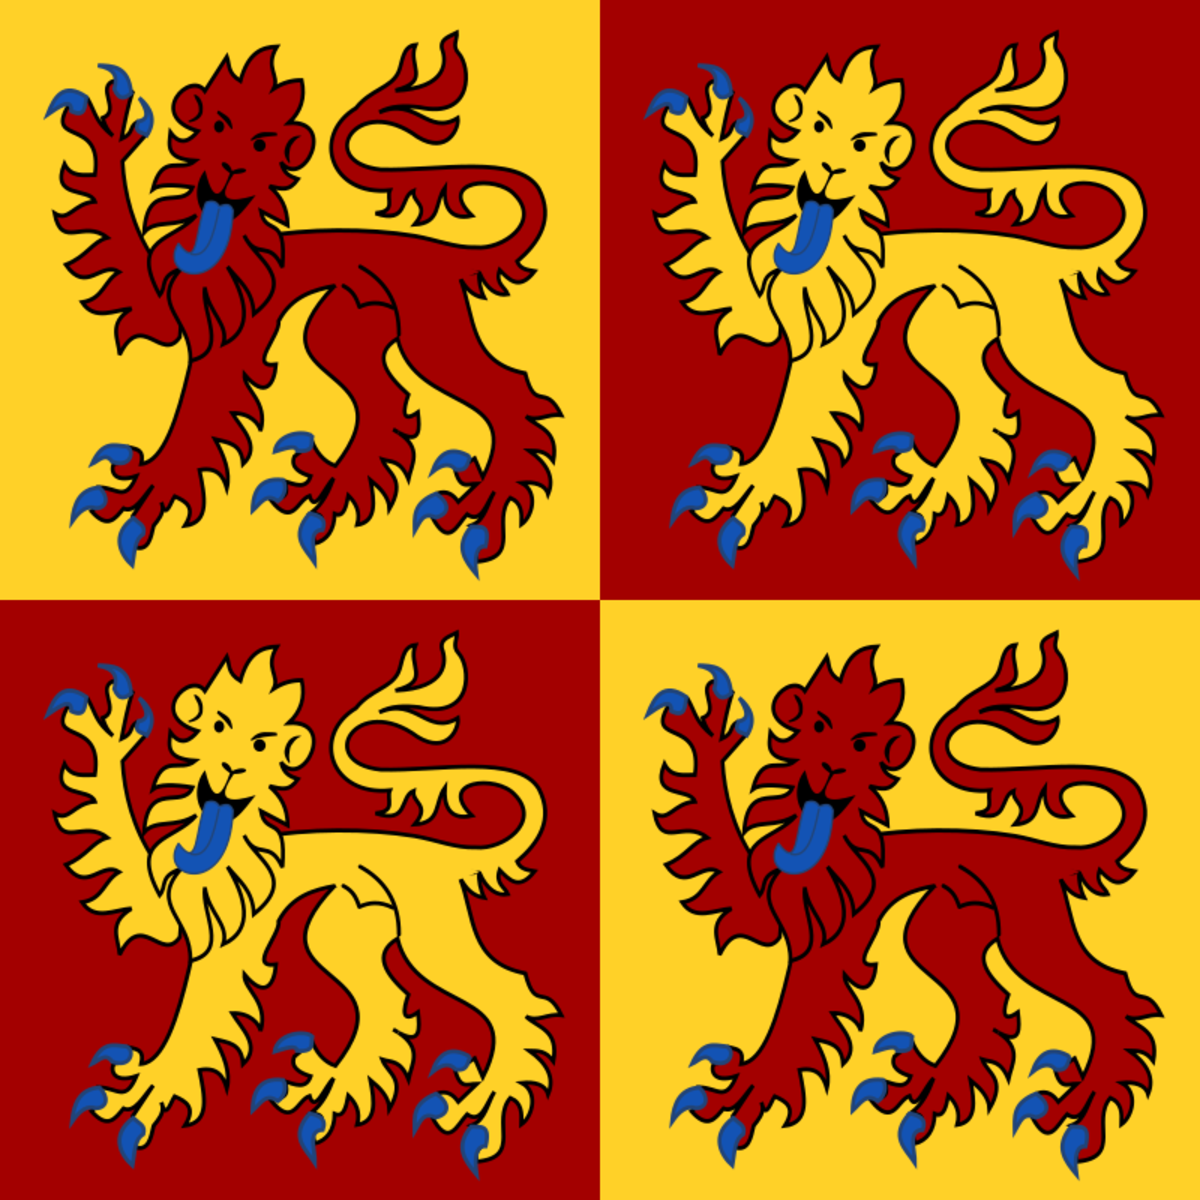 The Flag of the Kingdom of Gwynned used by Llewellyn the Great, Owain's ancestor. Prince Charles, the current Prince of Wales uses a version of this.